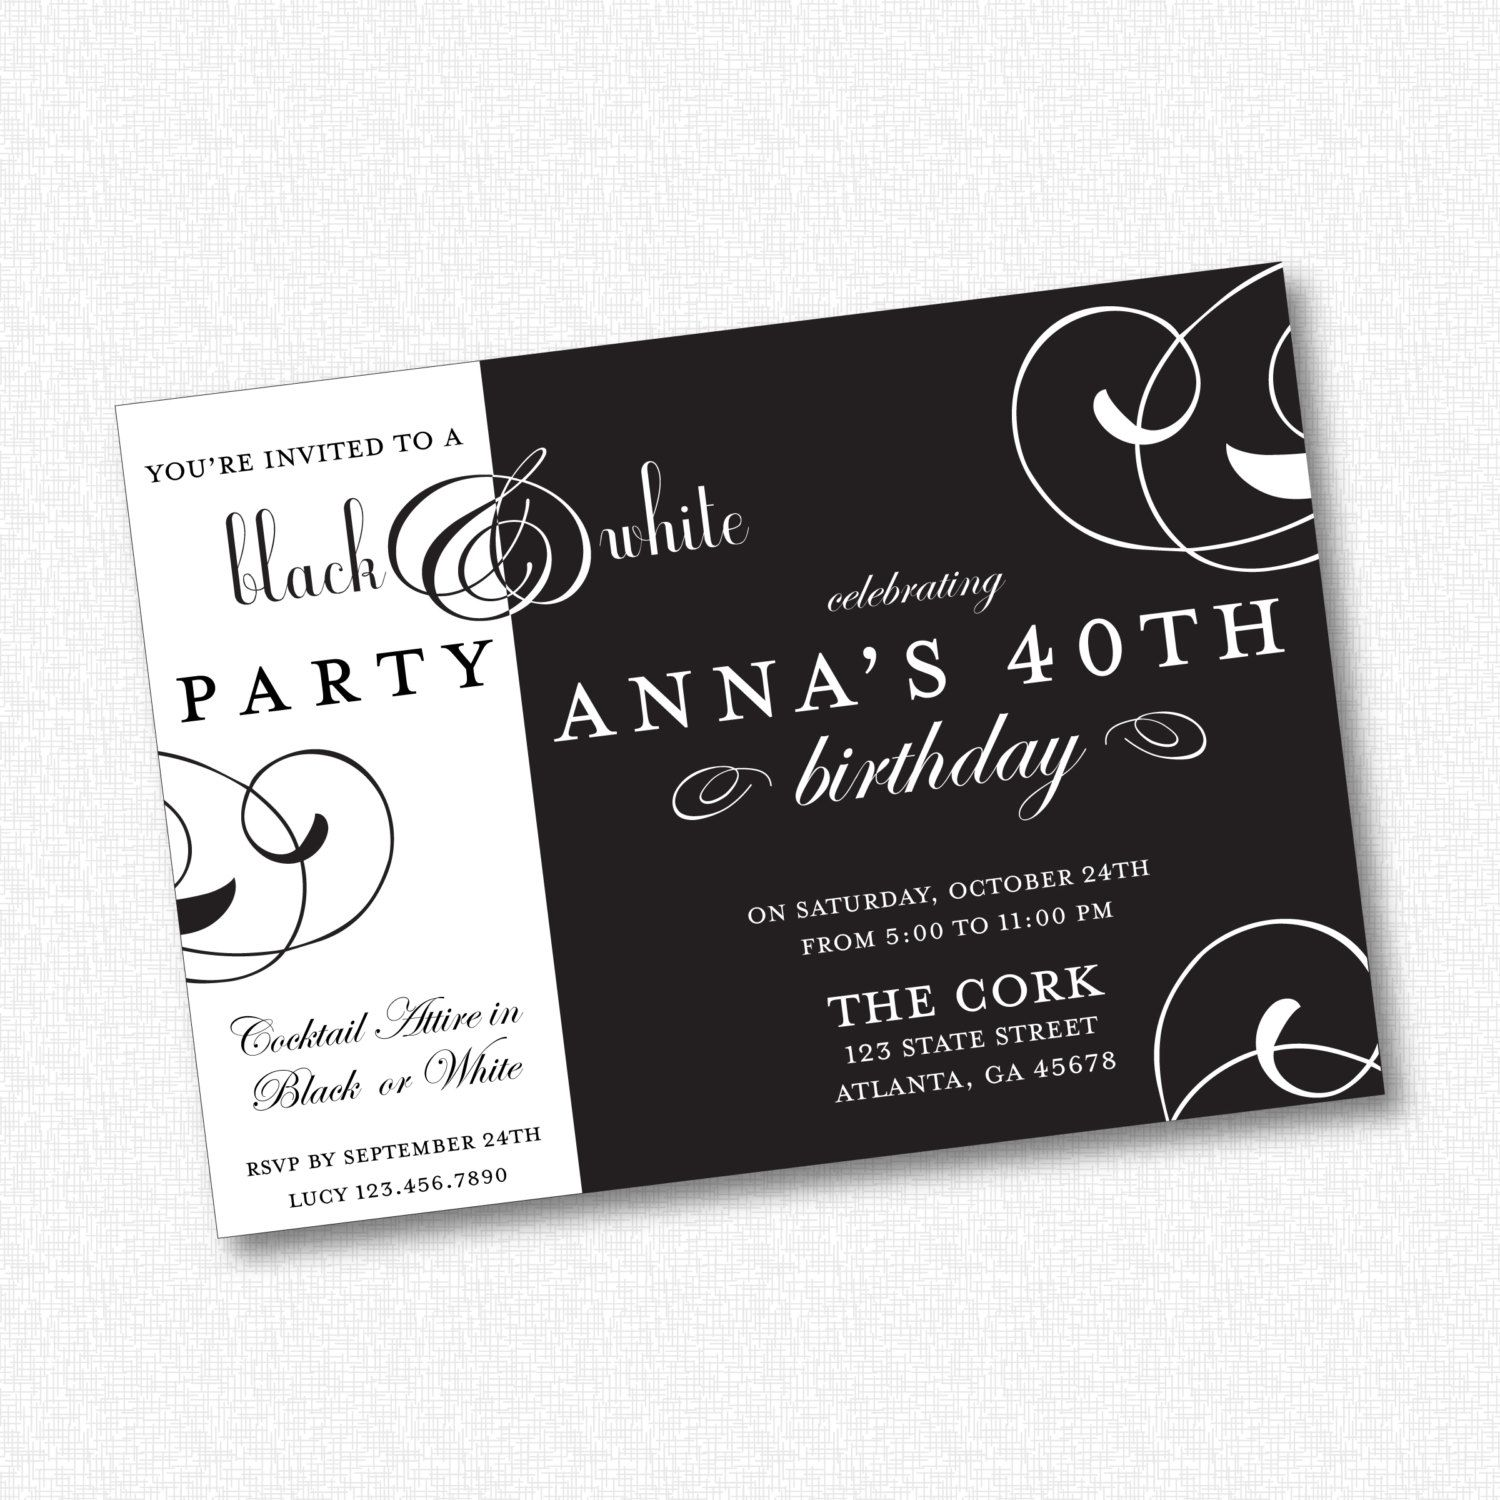 black  u0026 white party invitation  printable 21301 by